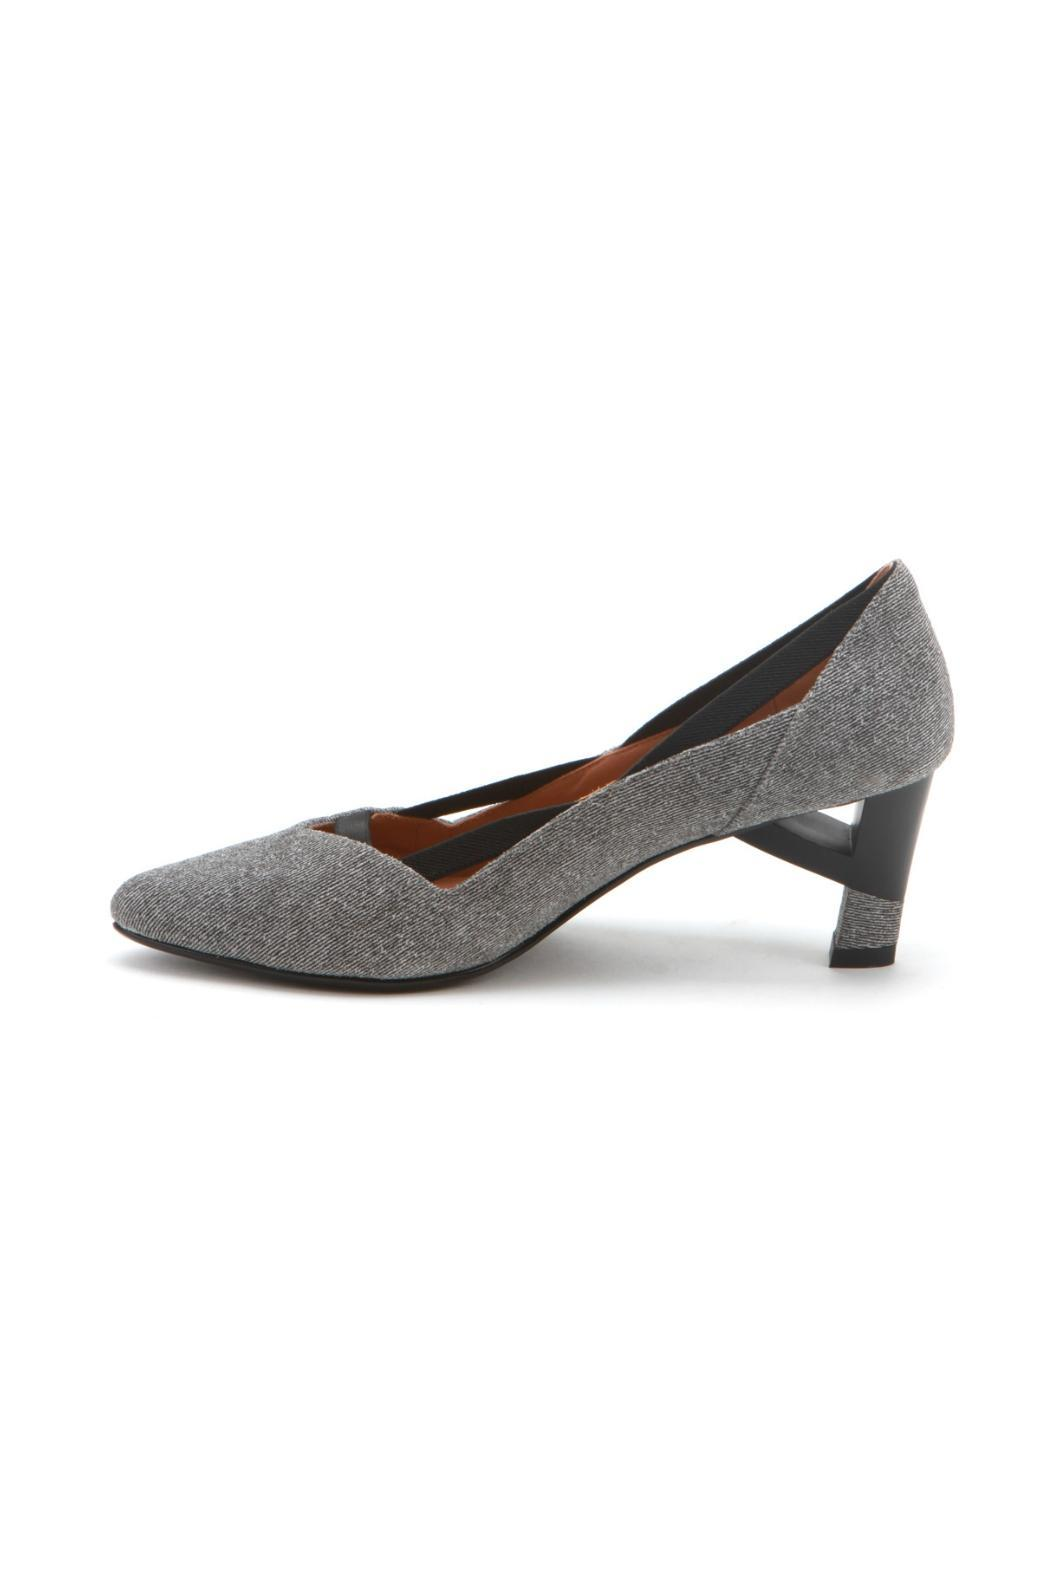 United Nude Grey Pump - Main Image